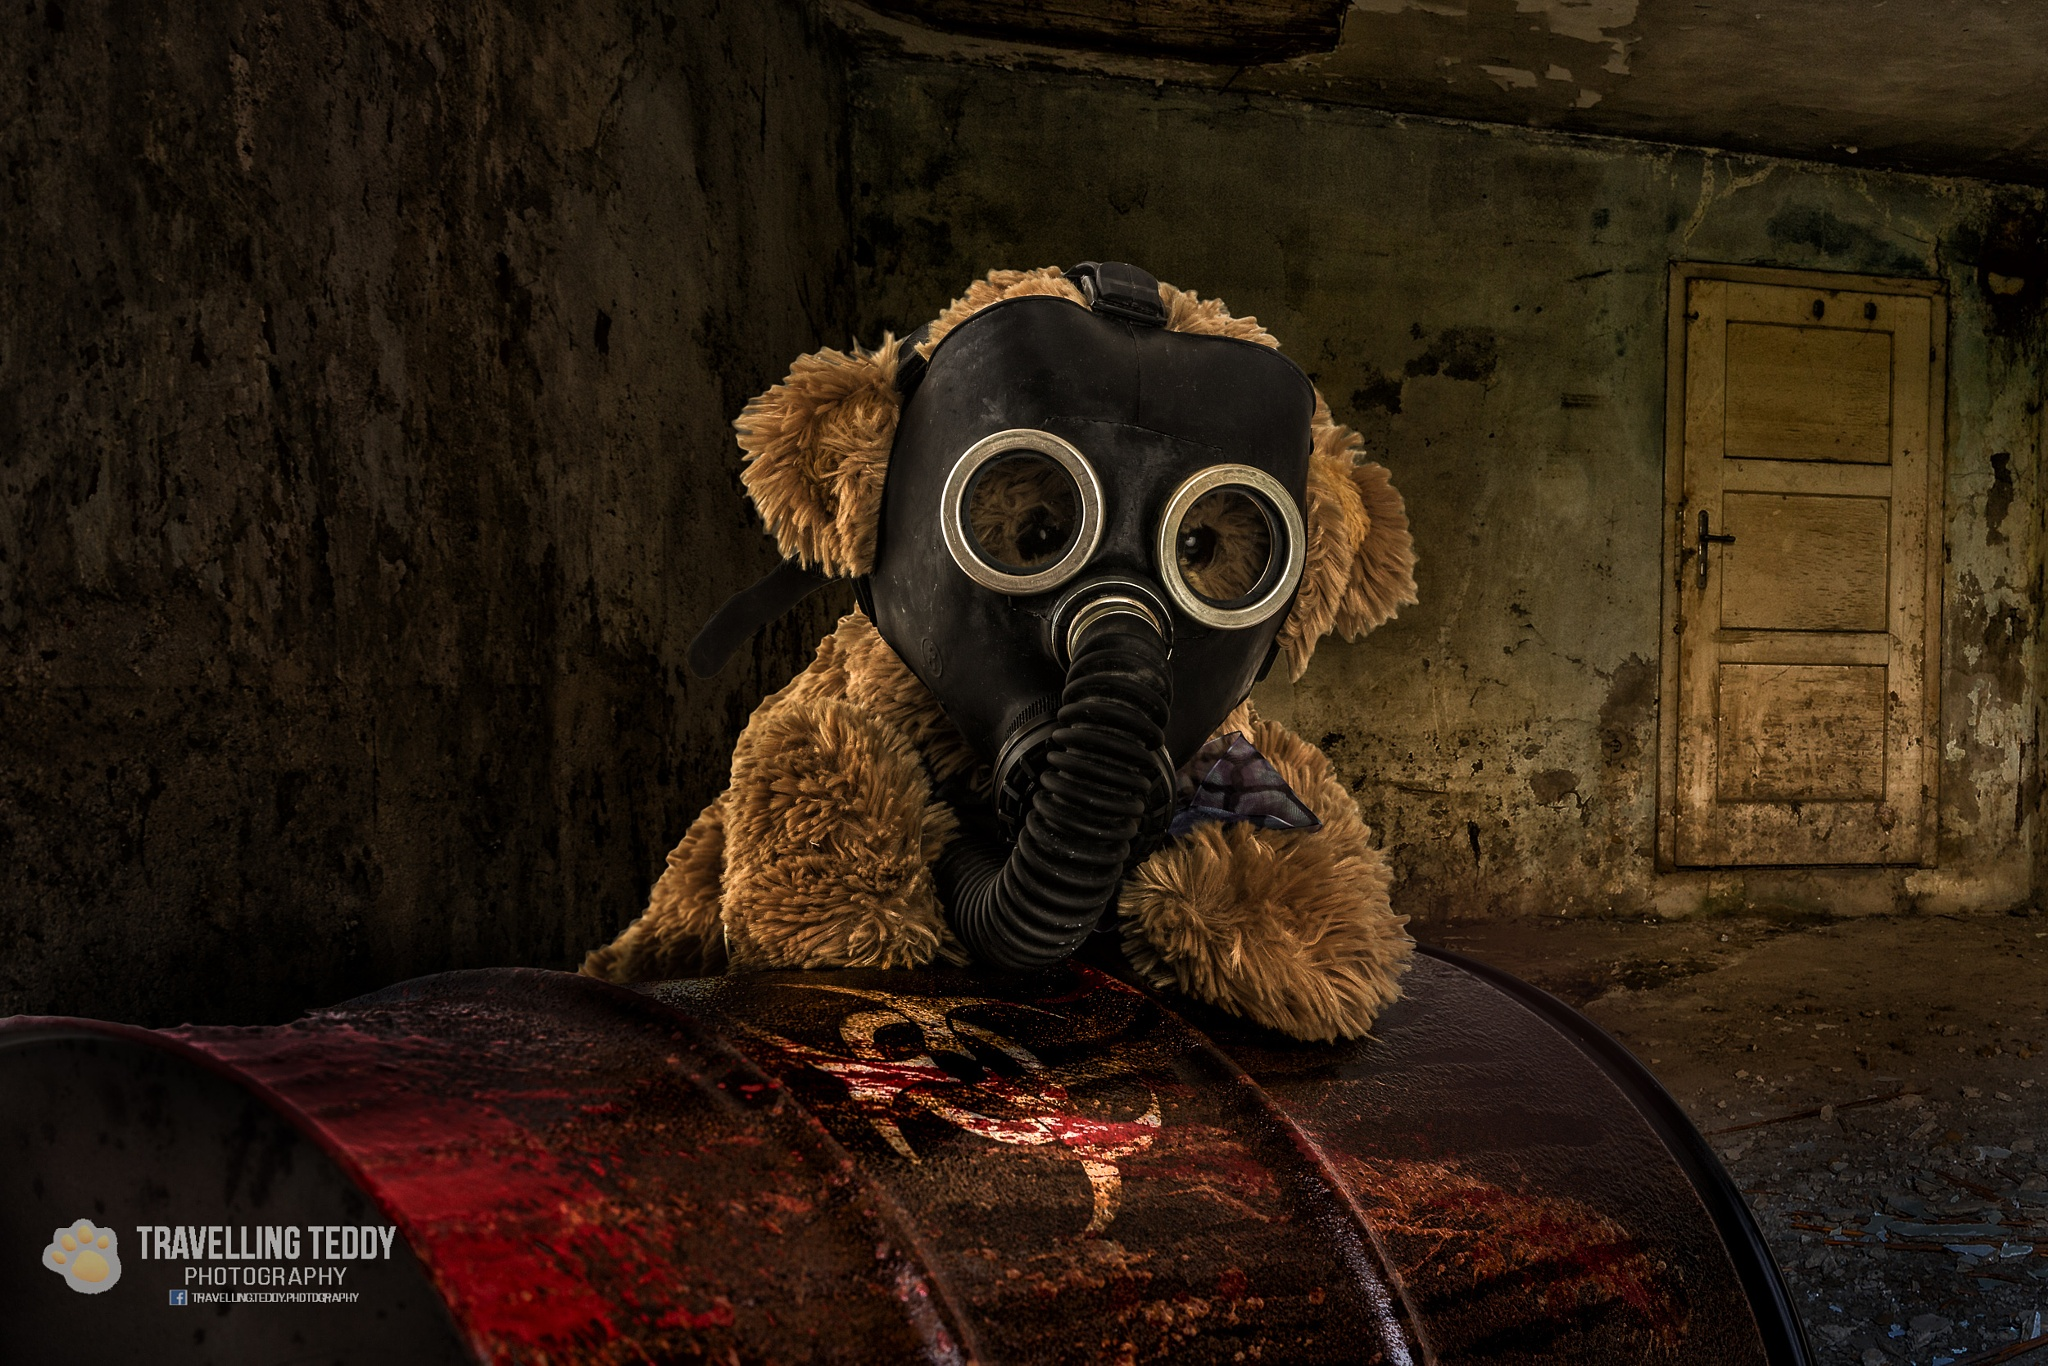 Teddy in troubles by Christian Kneidinger